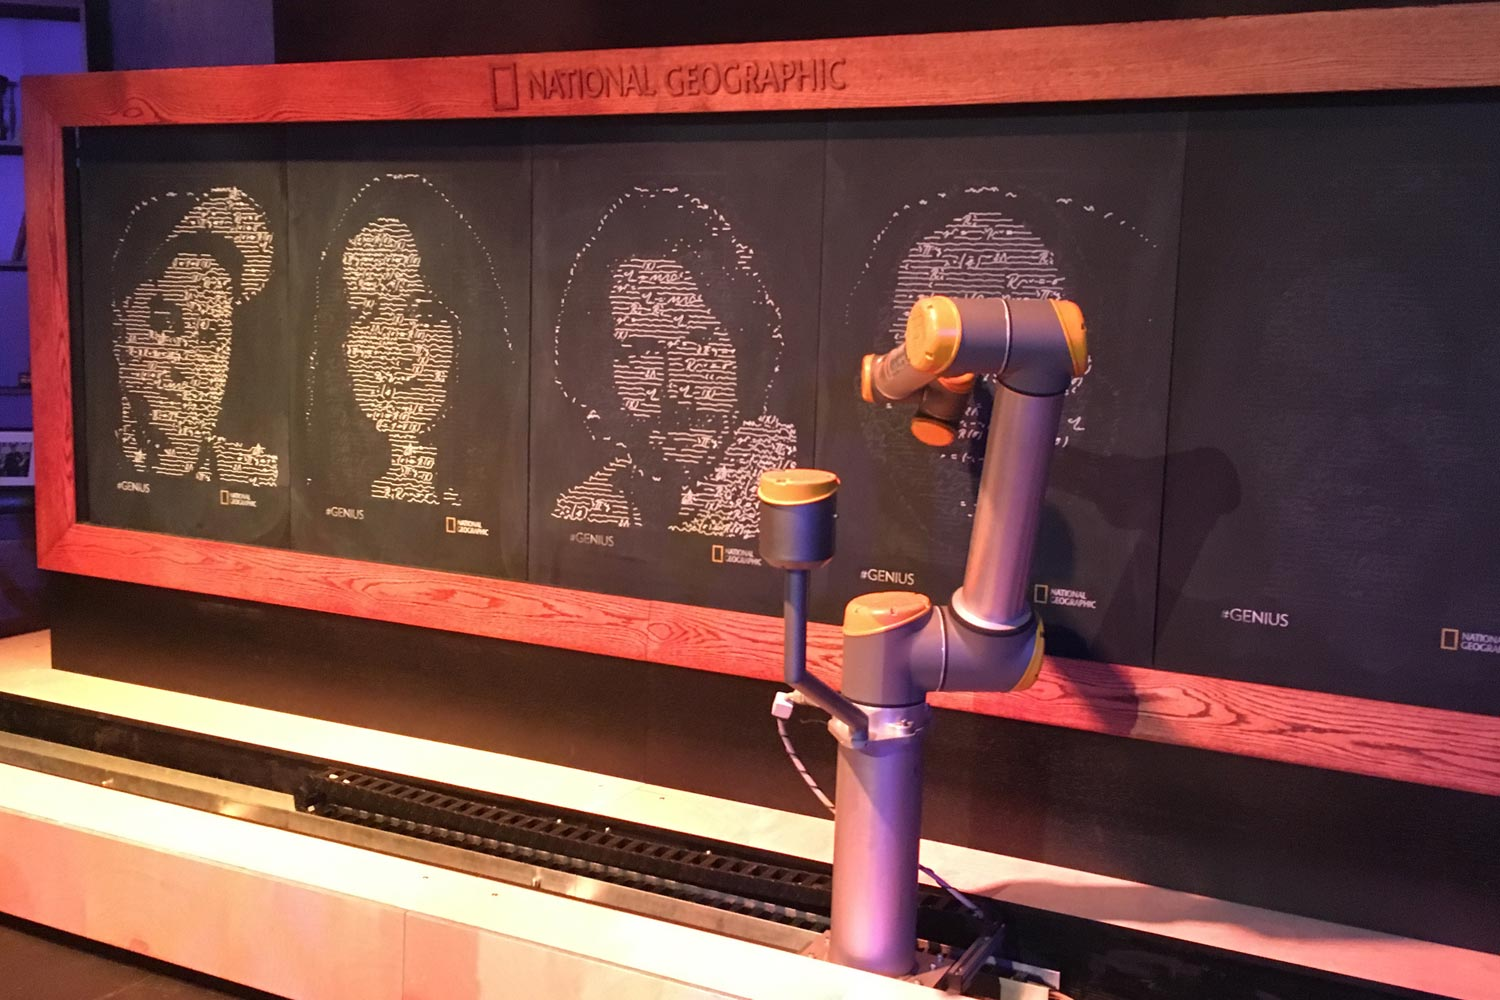 Robot arm draws chalk portraits of Twitter followers using mathematical equations.